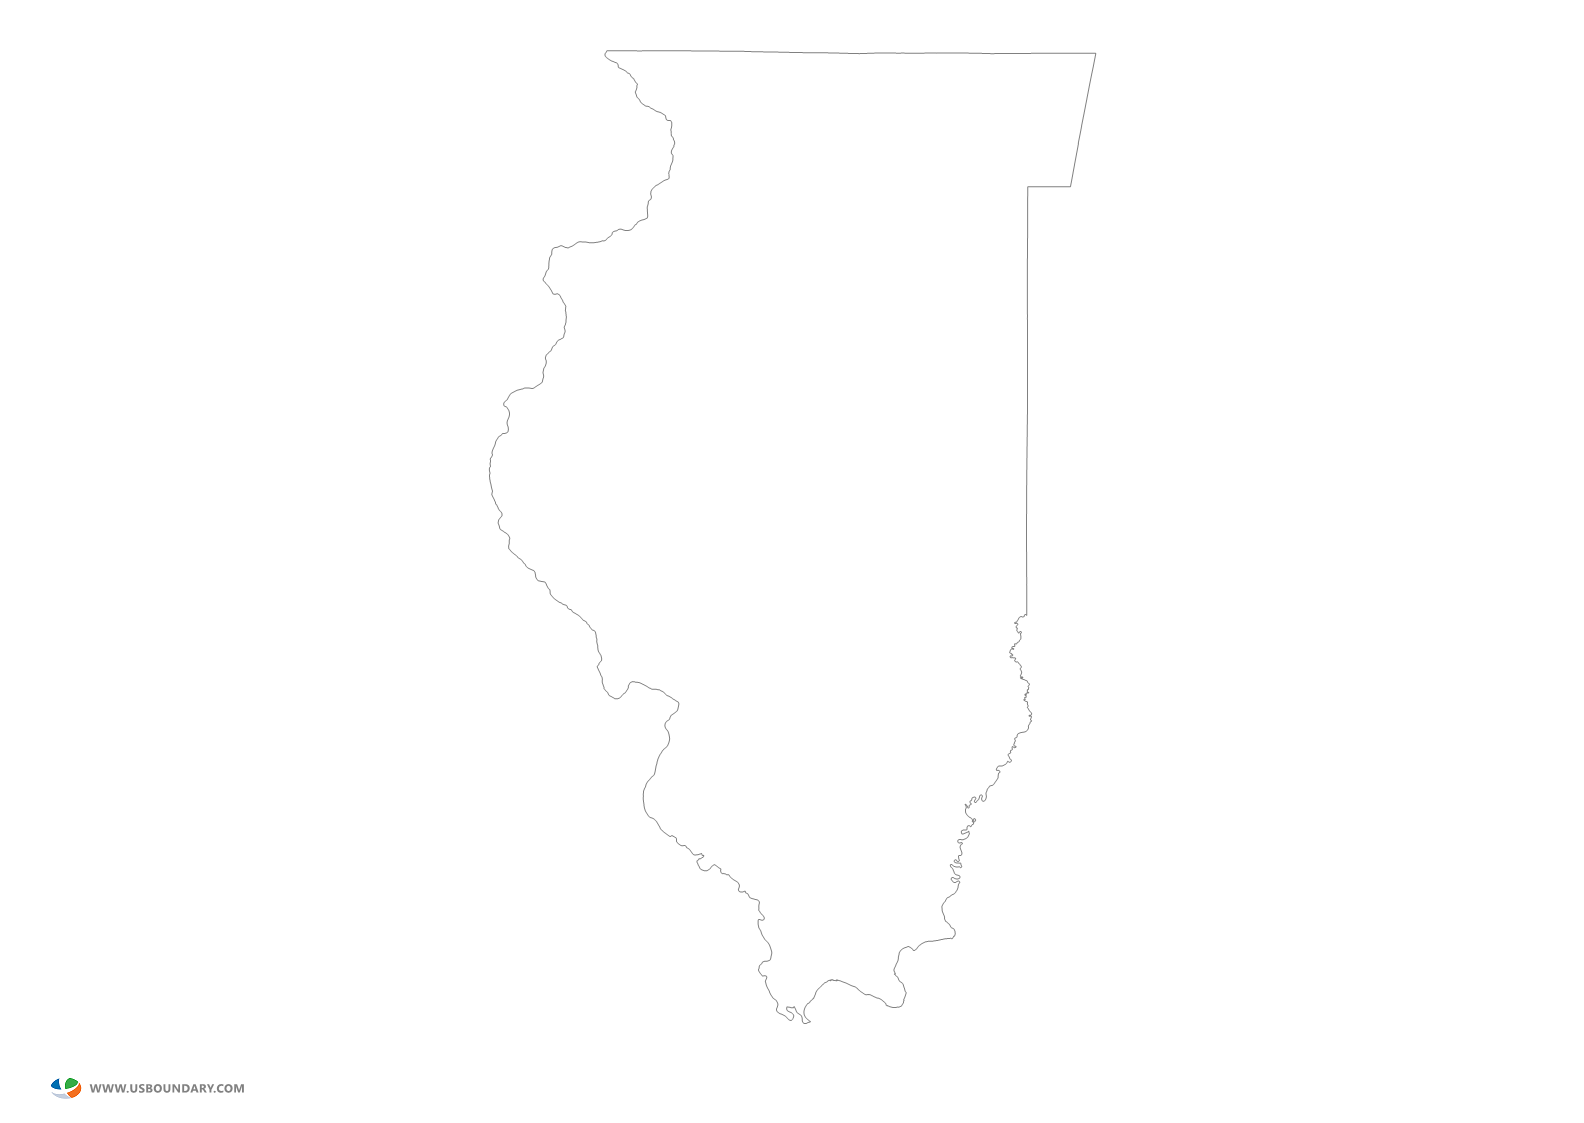 Illinois outline png. State maps download map